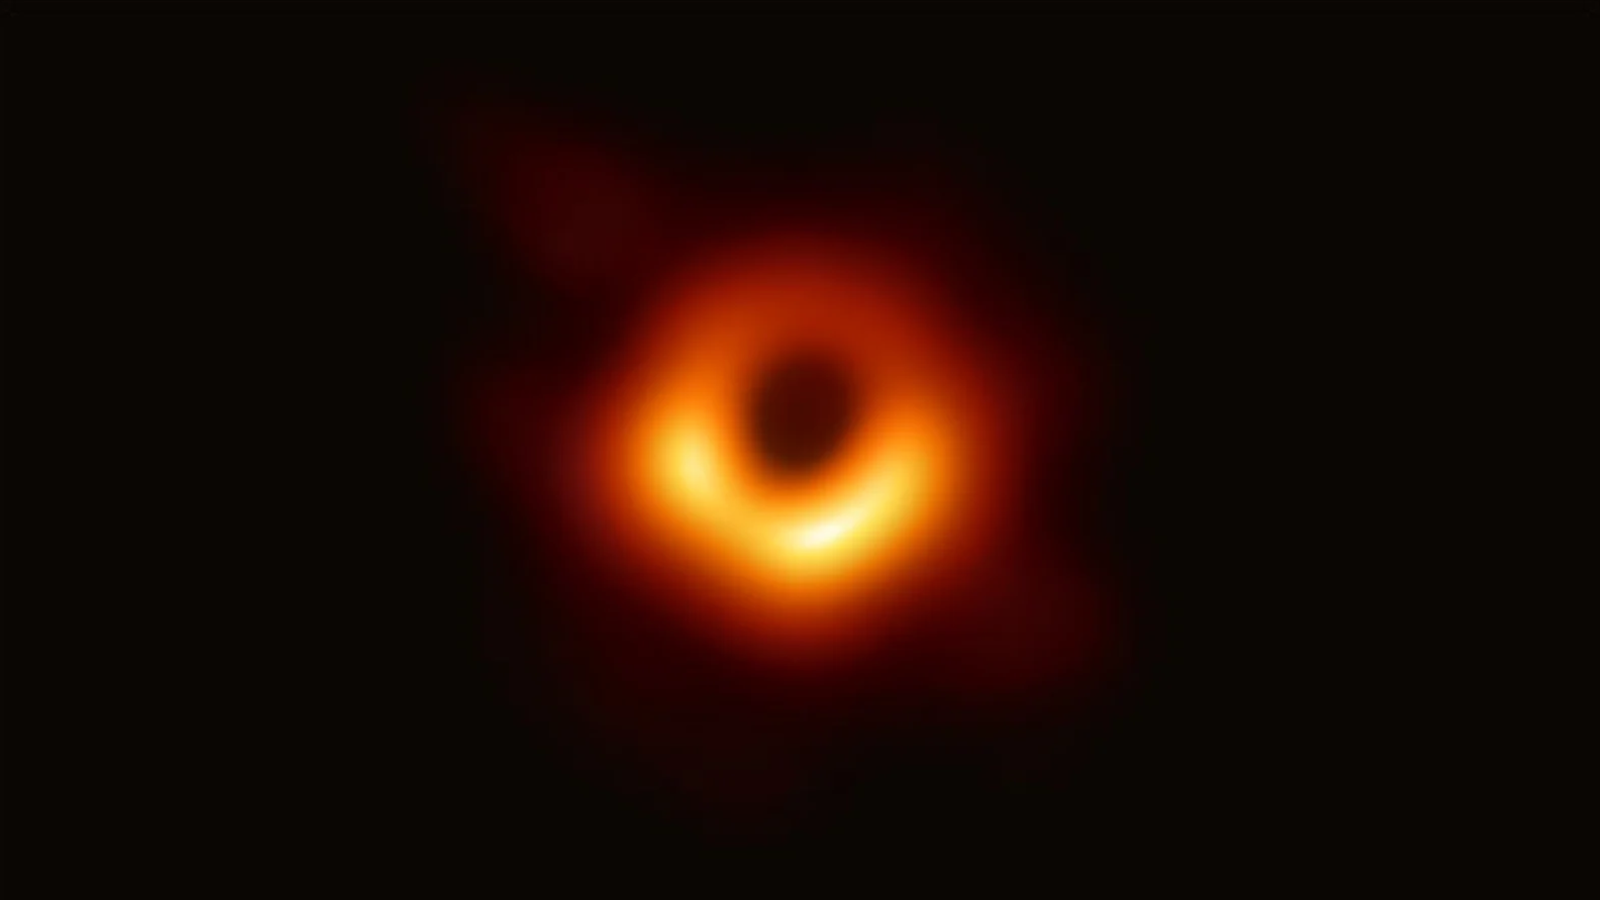 Scientists Behind First Black Hole Image Win $3 Million Breakthrough Prize Award